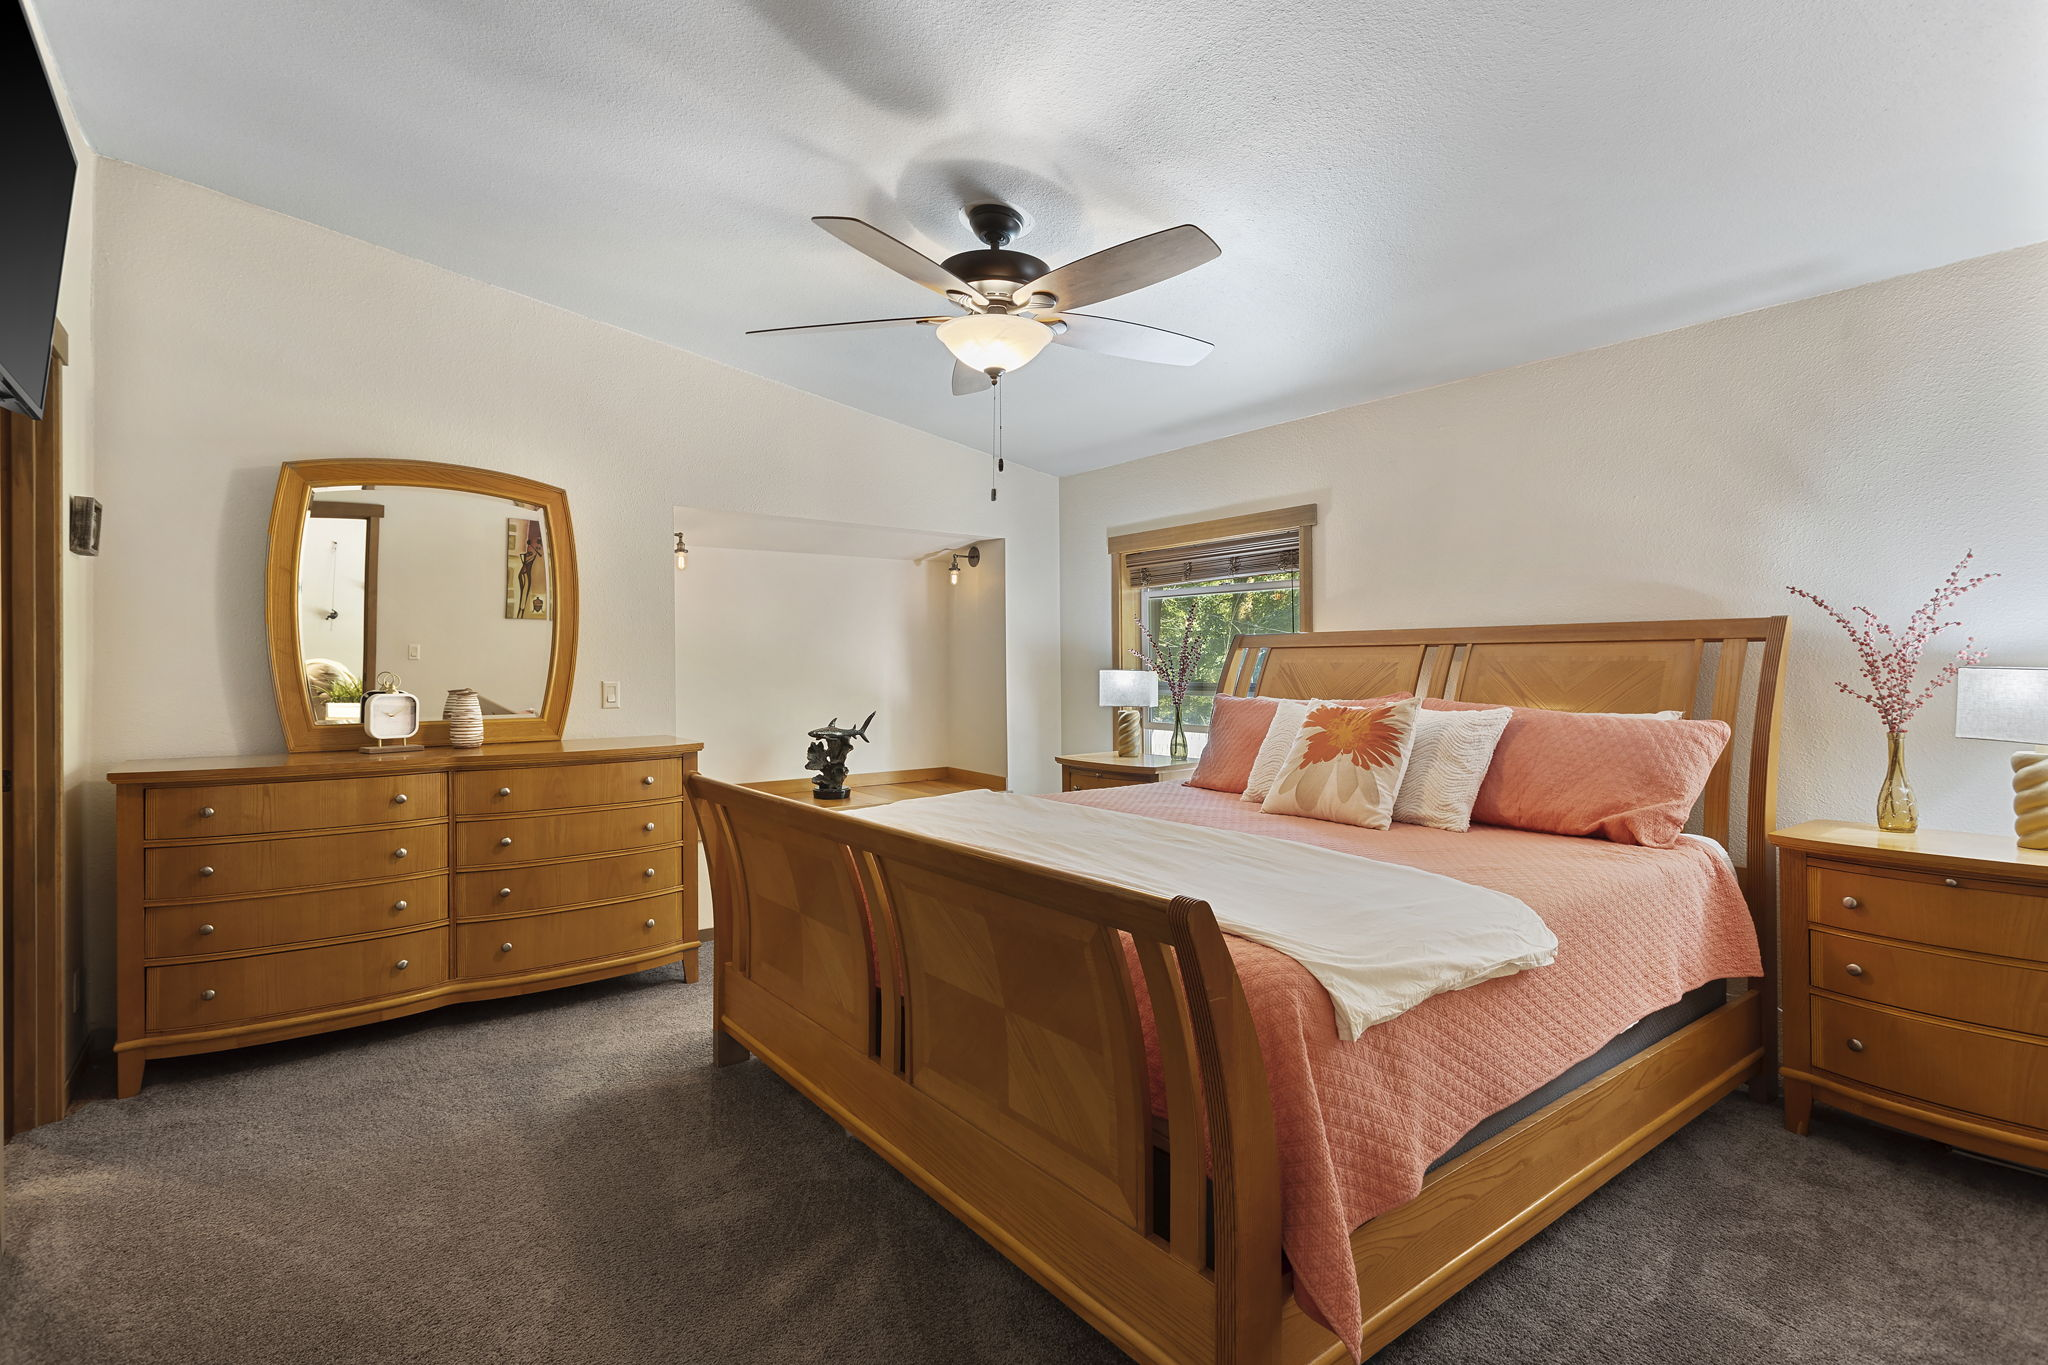 Huge Master bedroom with walk in closet and built in cove seating!